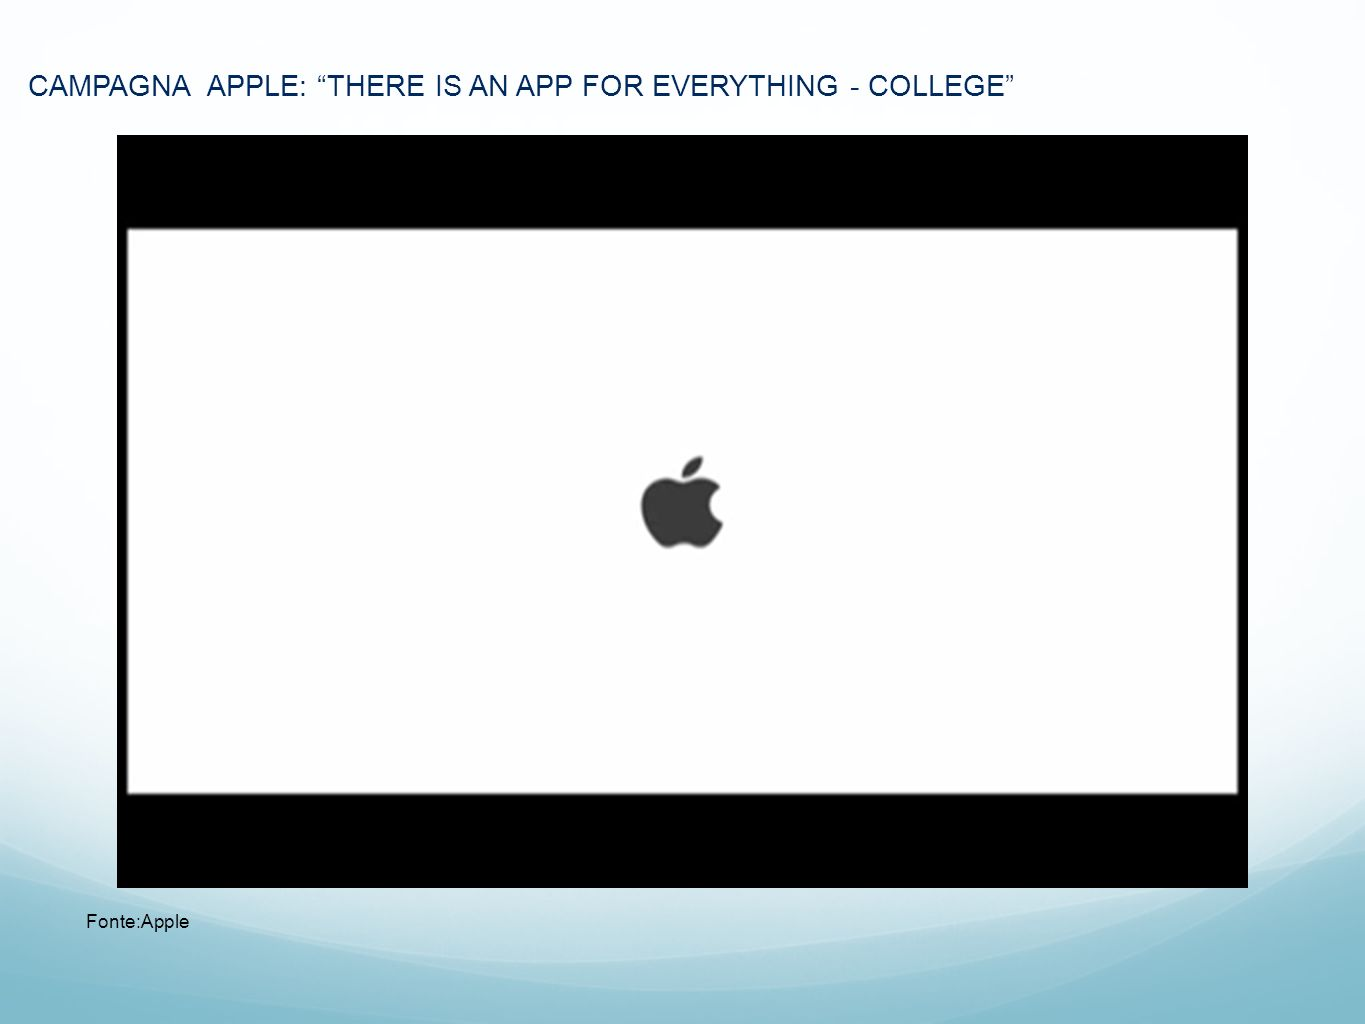 CAMPAGNA APPLE: THERE IS AN APP FOR EVERYTHING - COLLEGE